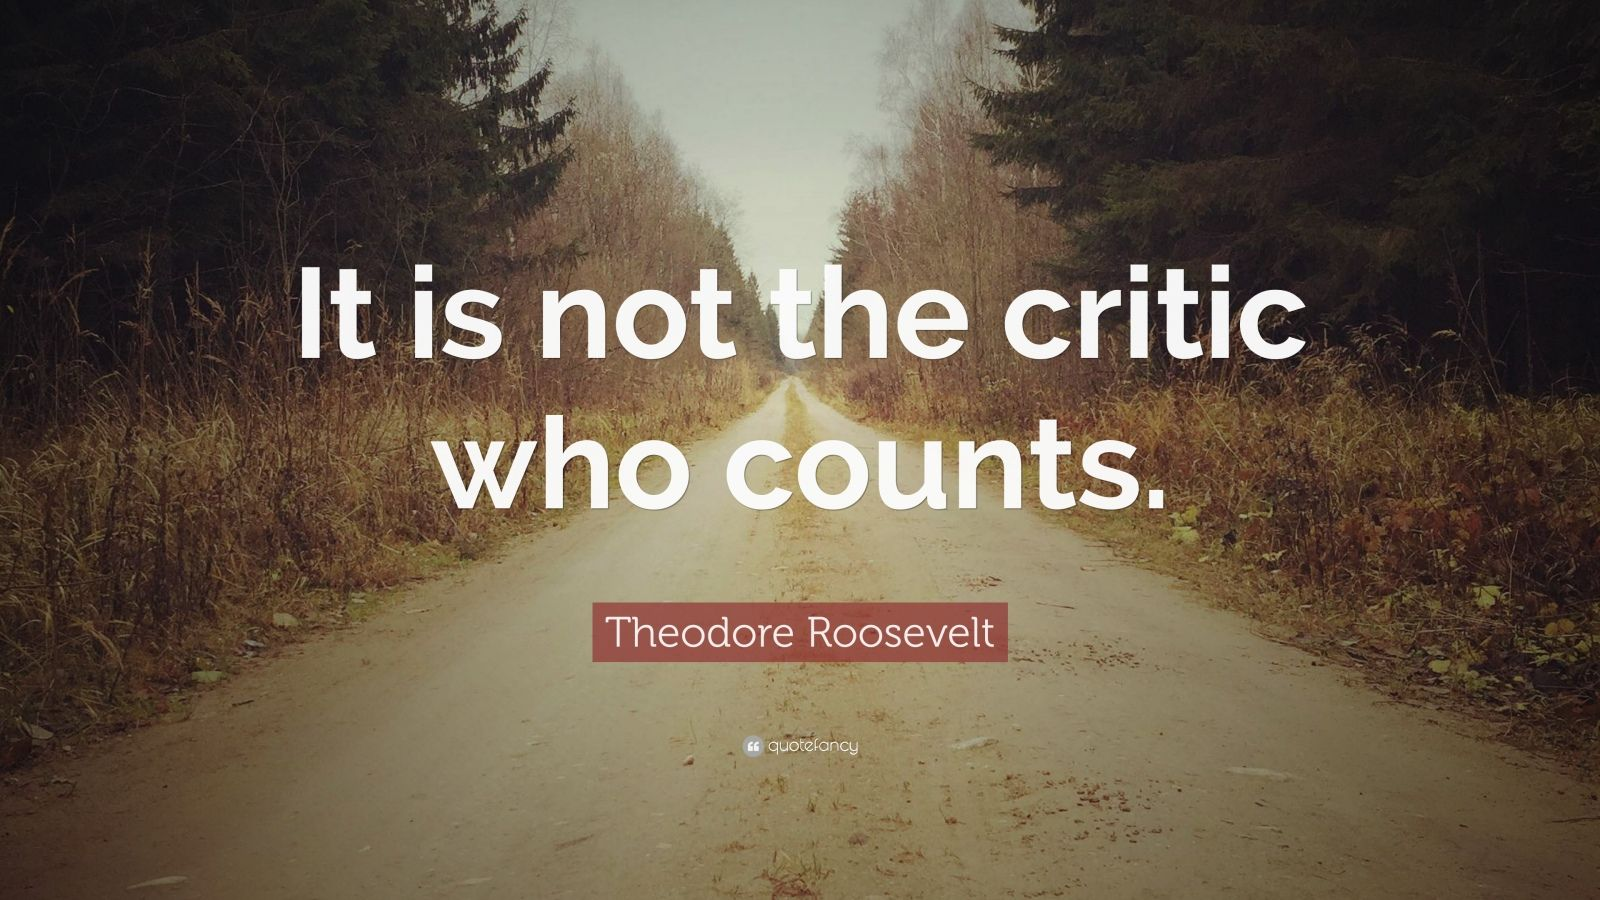 148606-Theodore-Roosevelt-Quote-It-is-not-the-critic-who-counts